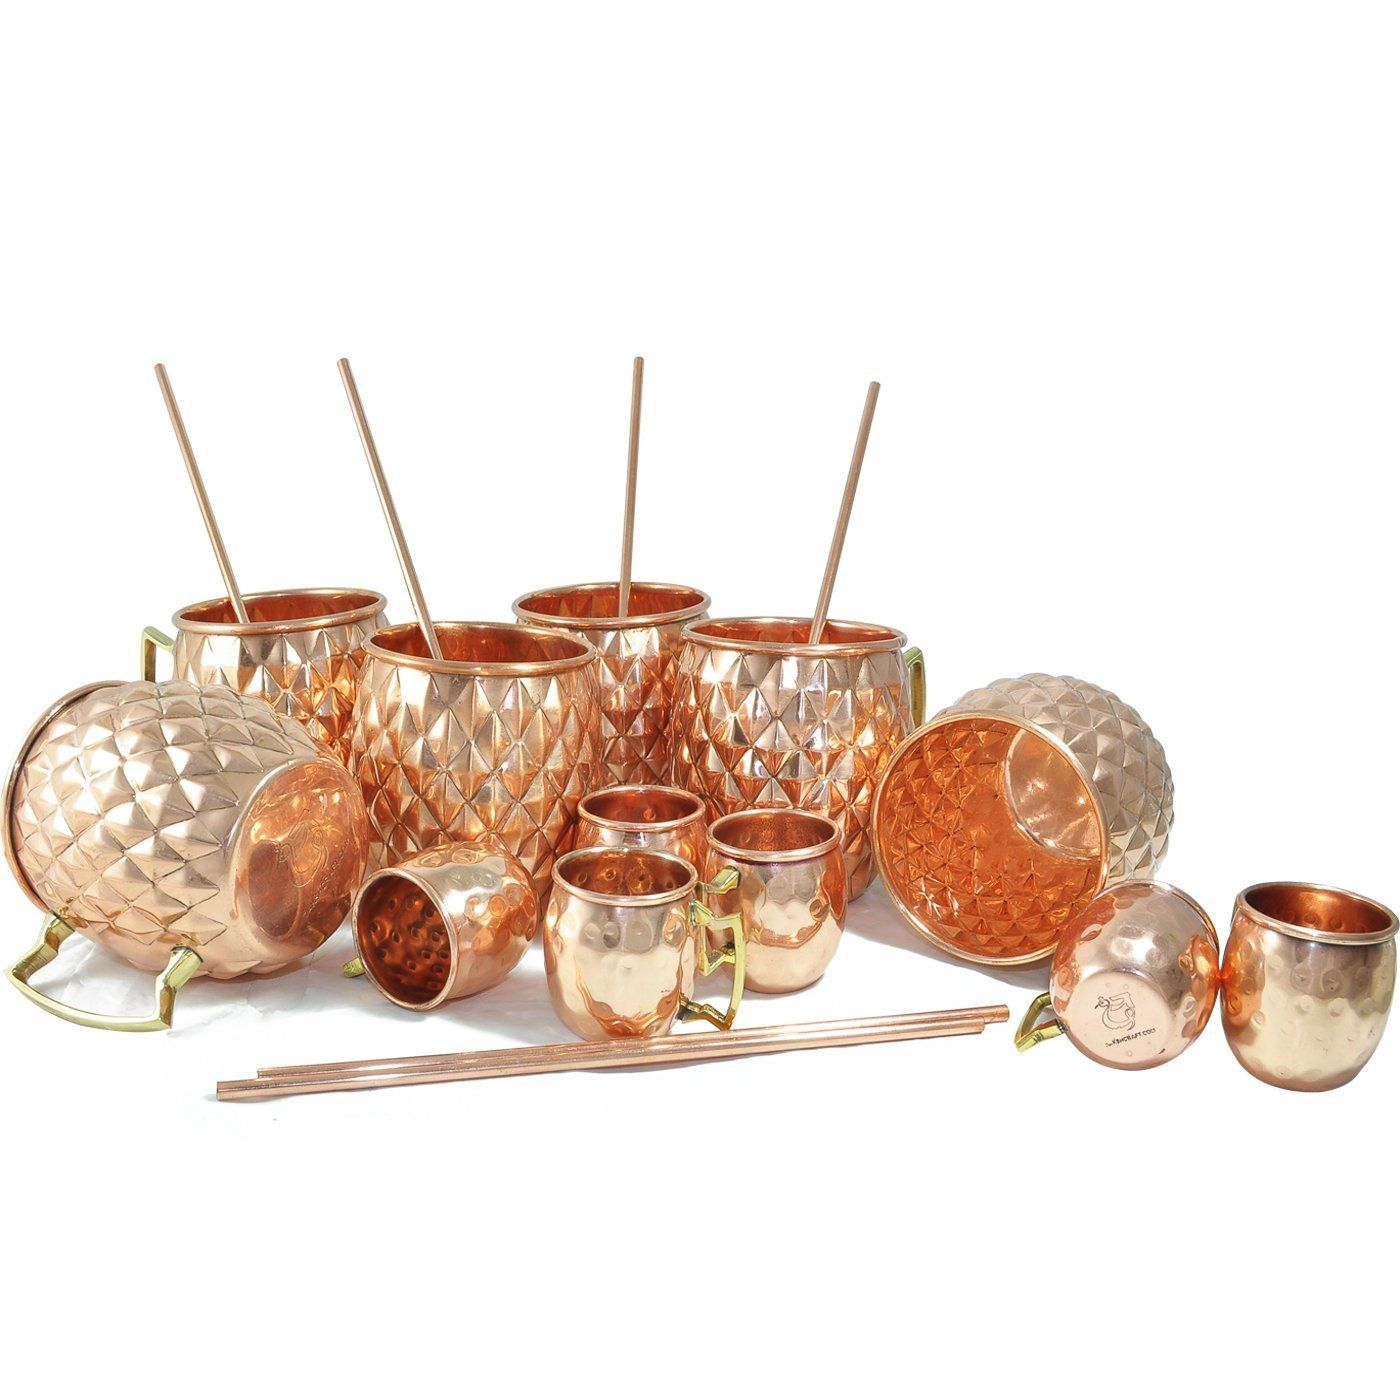 Amazon.com | DakshCraft ® Cocktail Diamond Cut Copper Mug (Capacity 16.90 oz) with FREE Copper Shot Mug (Capacity - 2 oz pr glass) & Copper Straw, Set of 6: Glassware & Drinkware